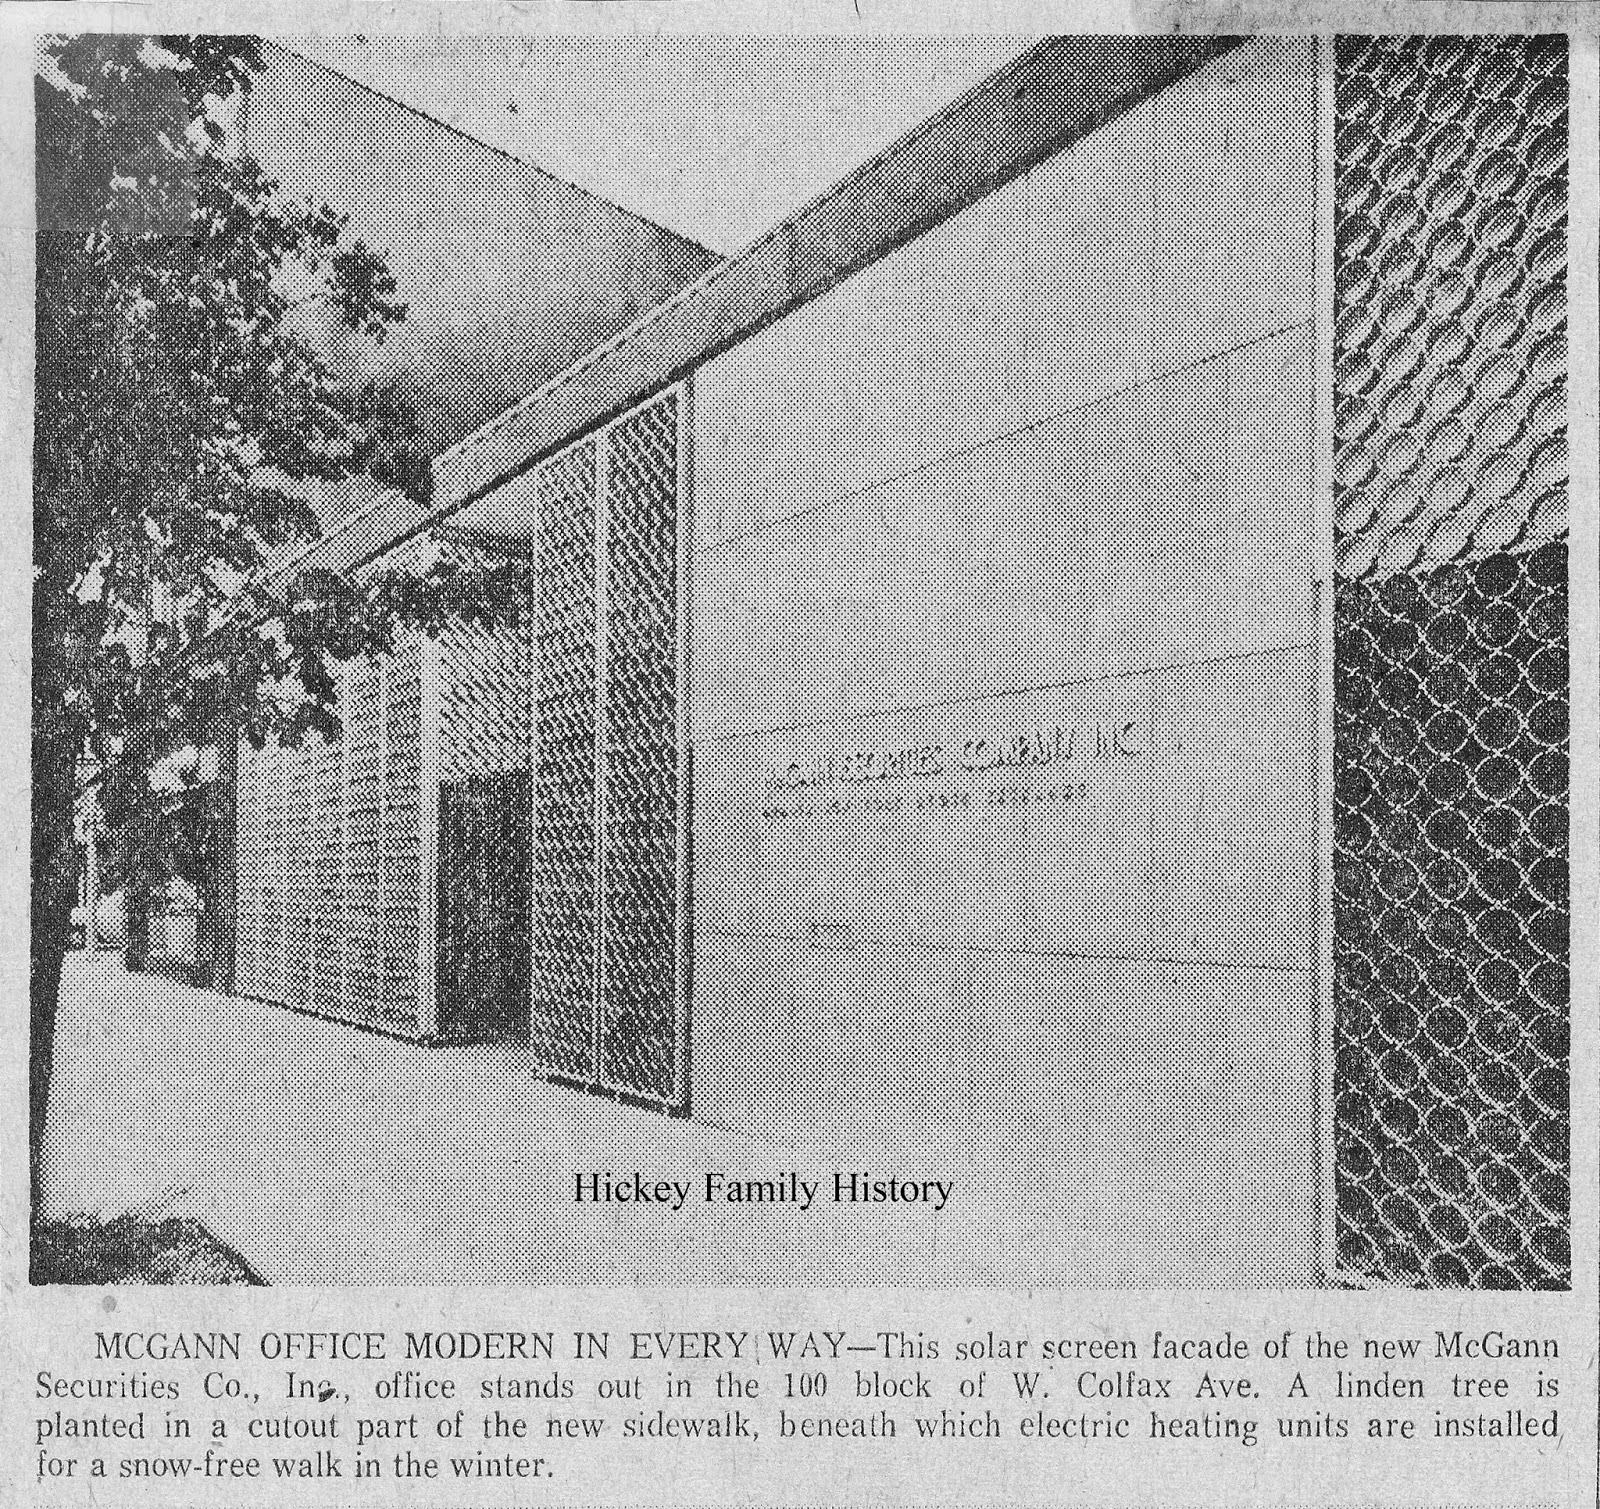 1961 thomas l hickey inc built the mcgann securities co building in south bend